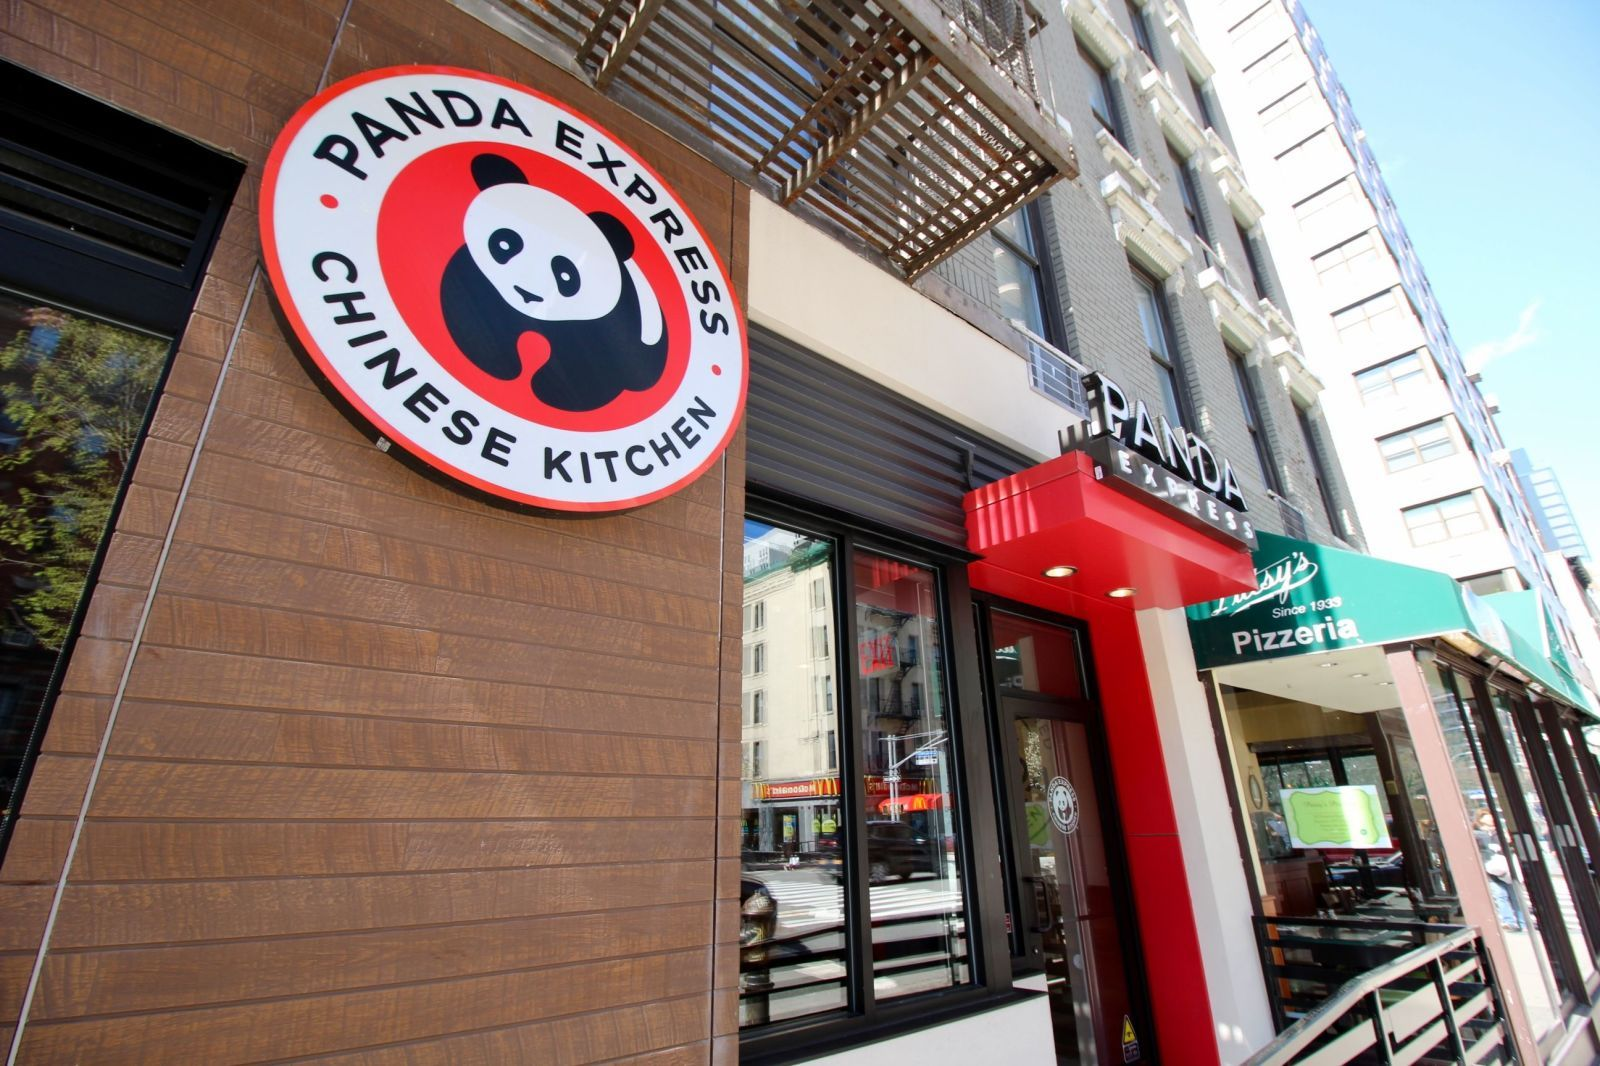 11 Things You Should Know Before Eating at Panda Express